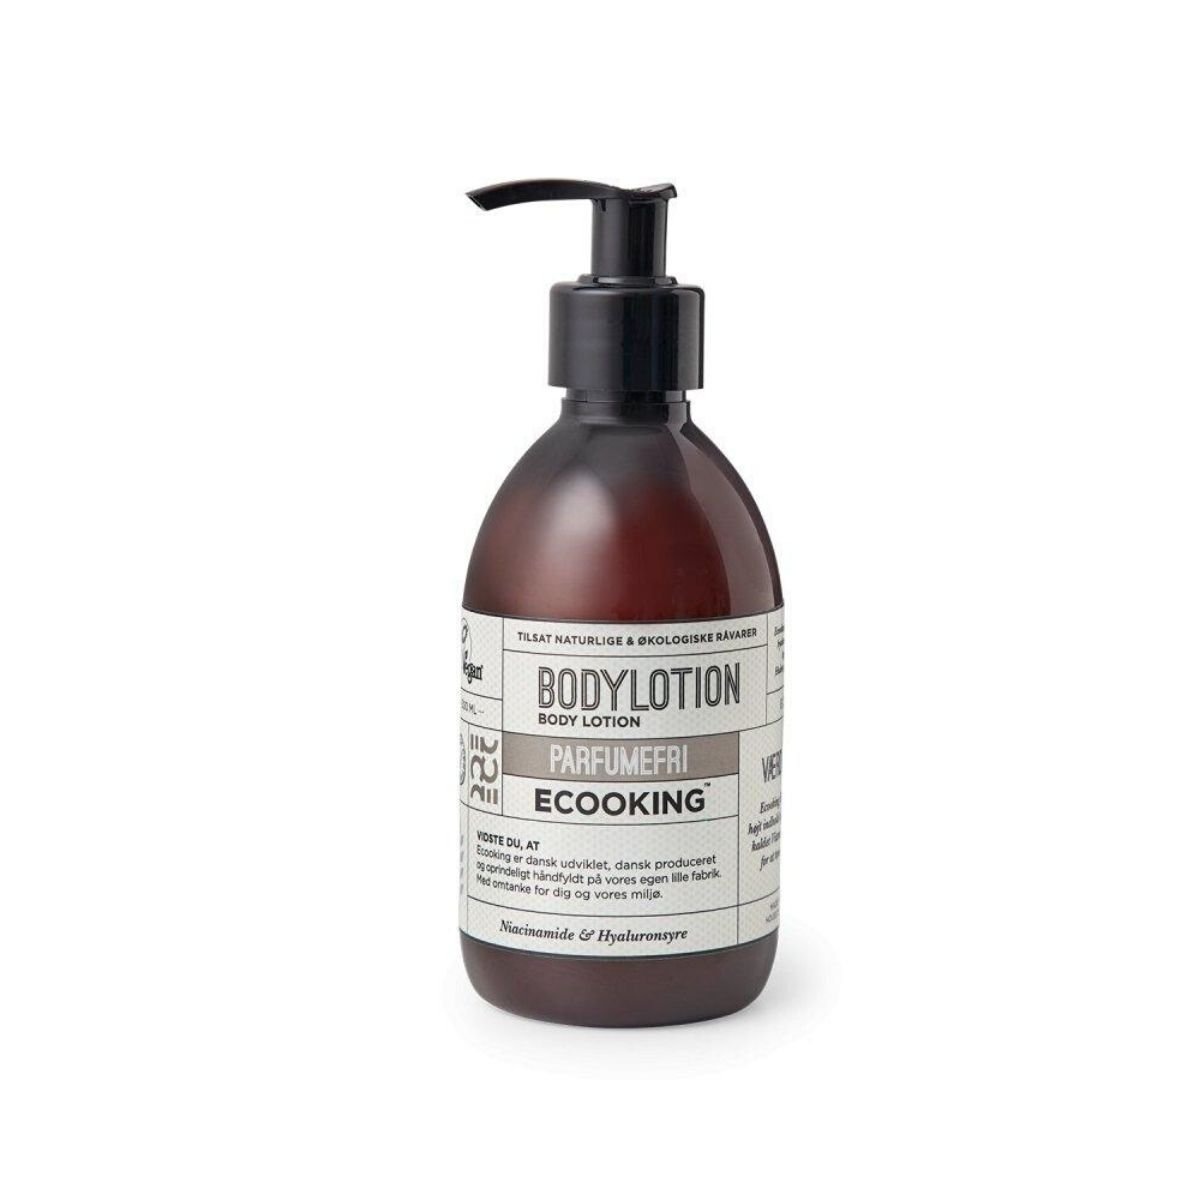 Ecooking Body Lotion - Nulallergi.dk